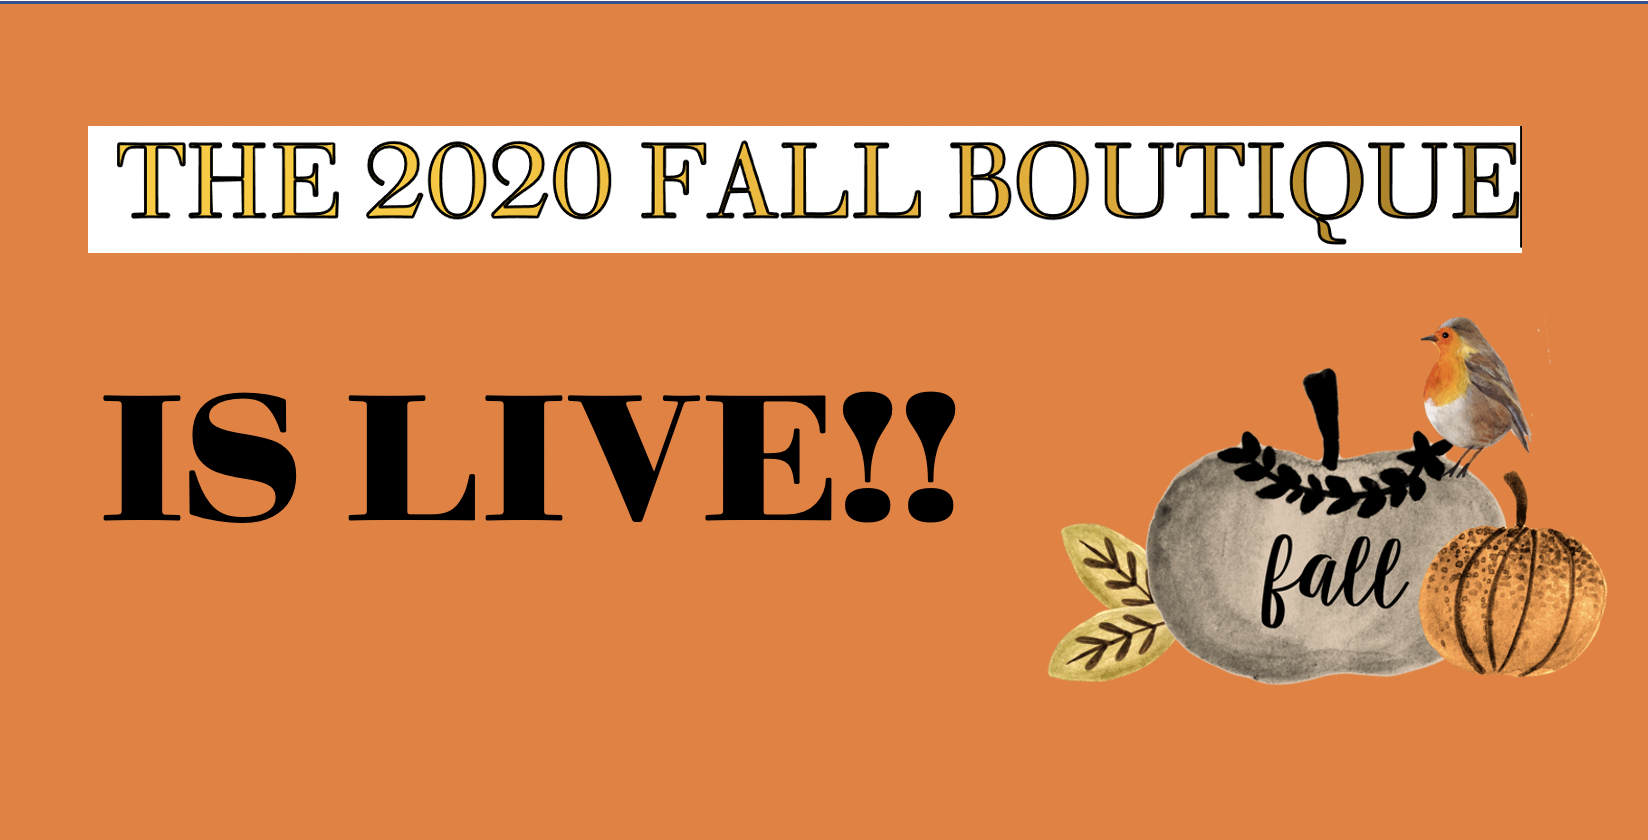 The 2020 Fall Boutique is live